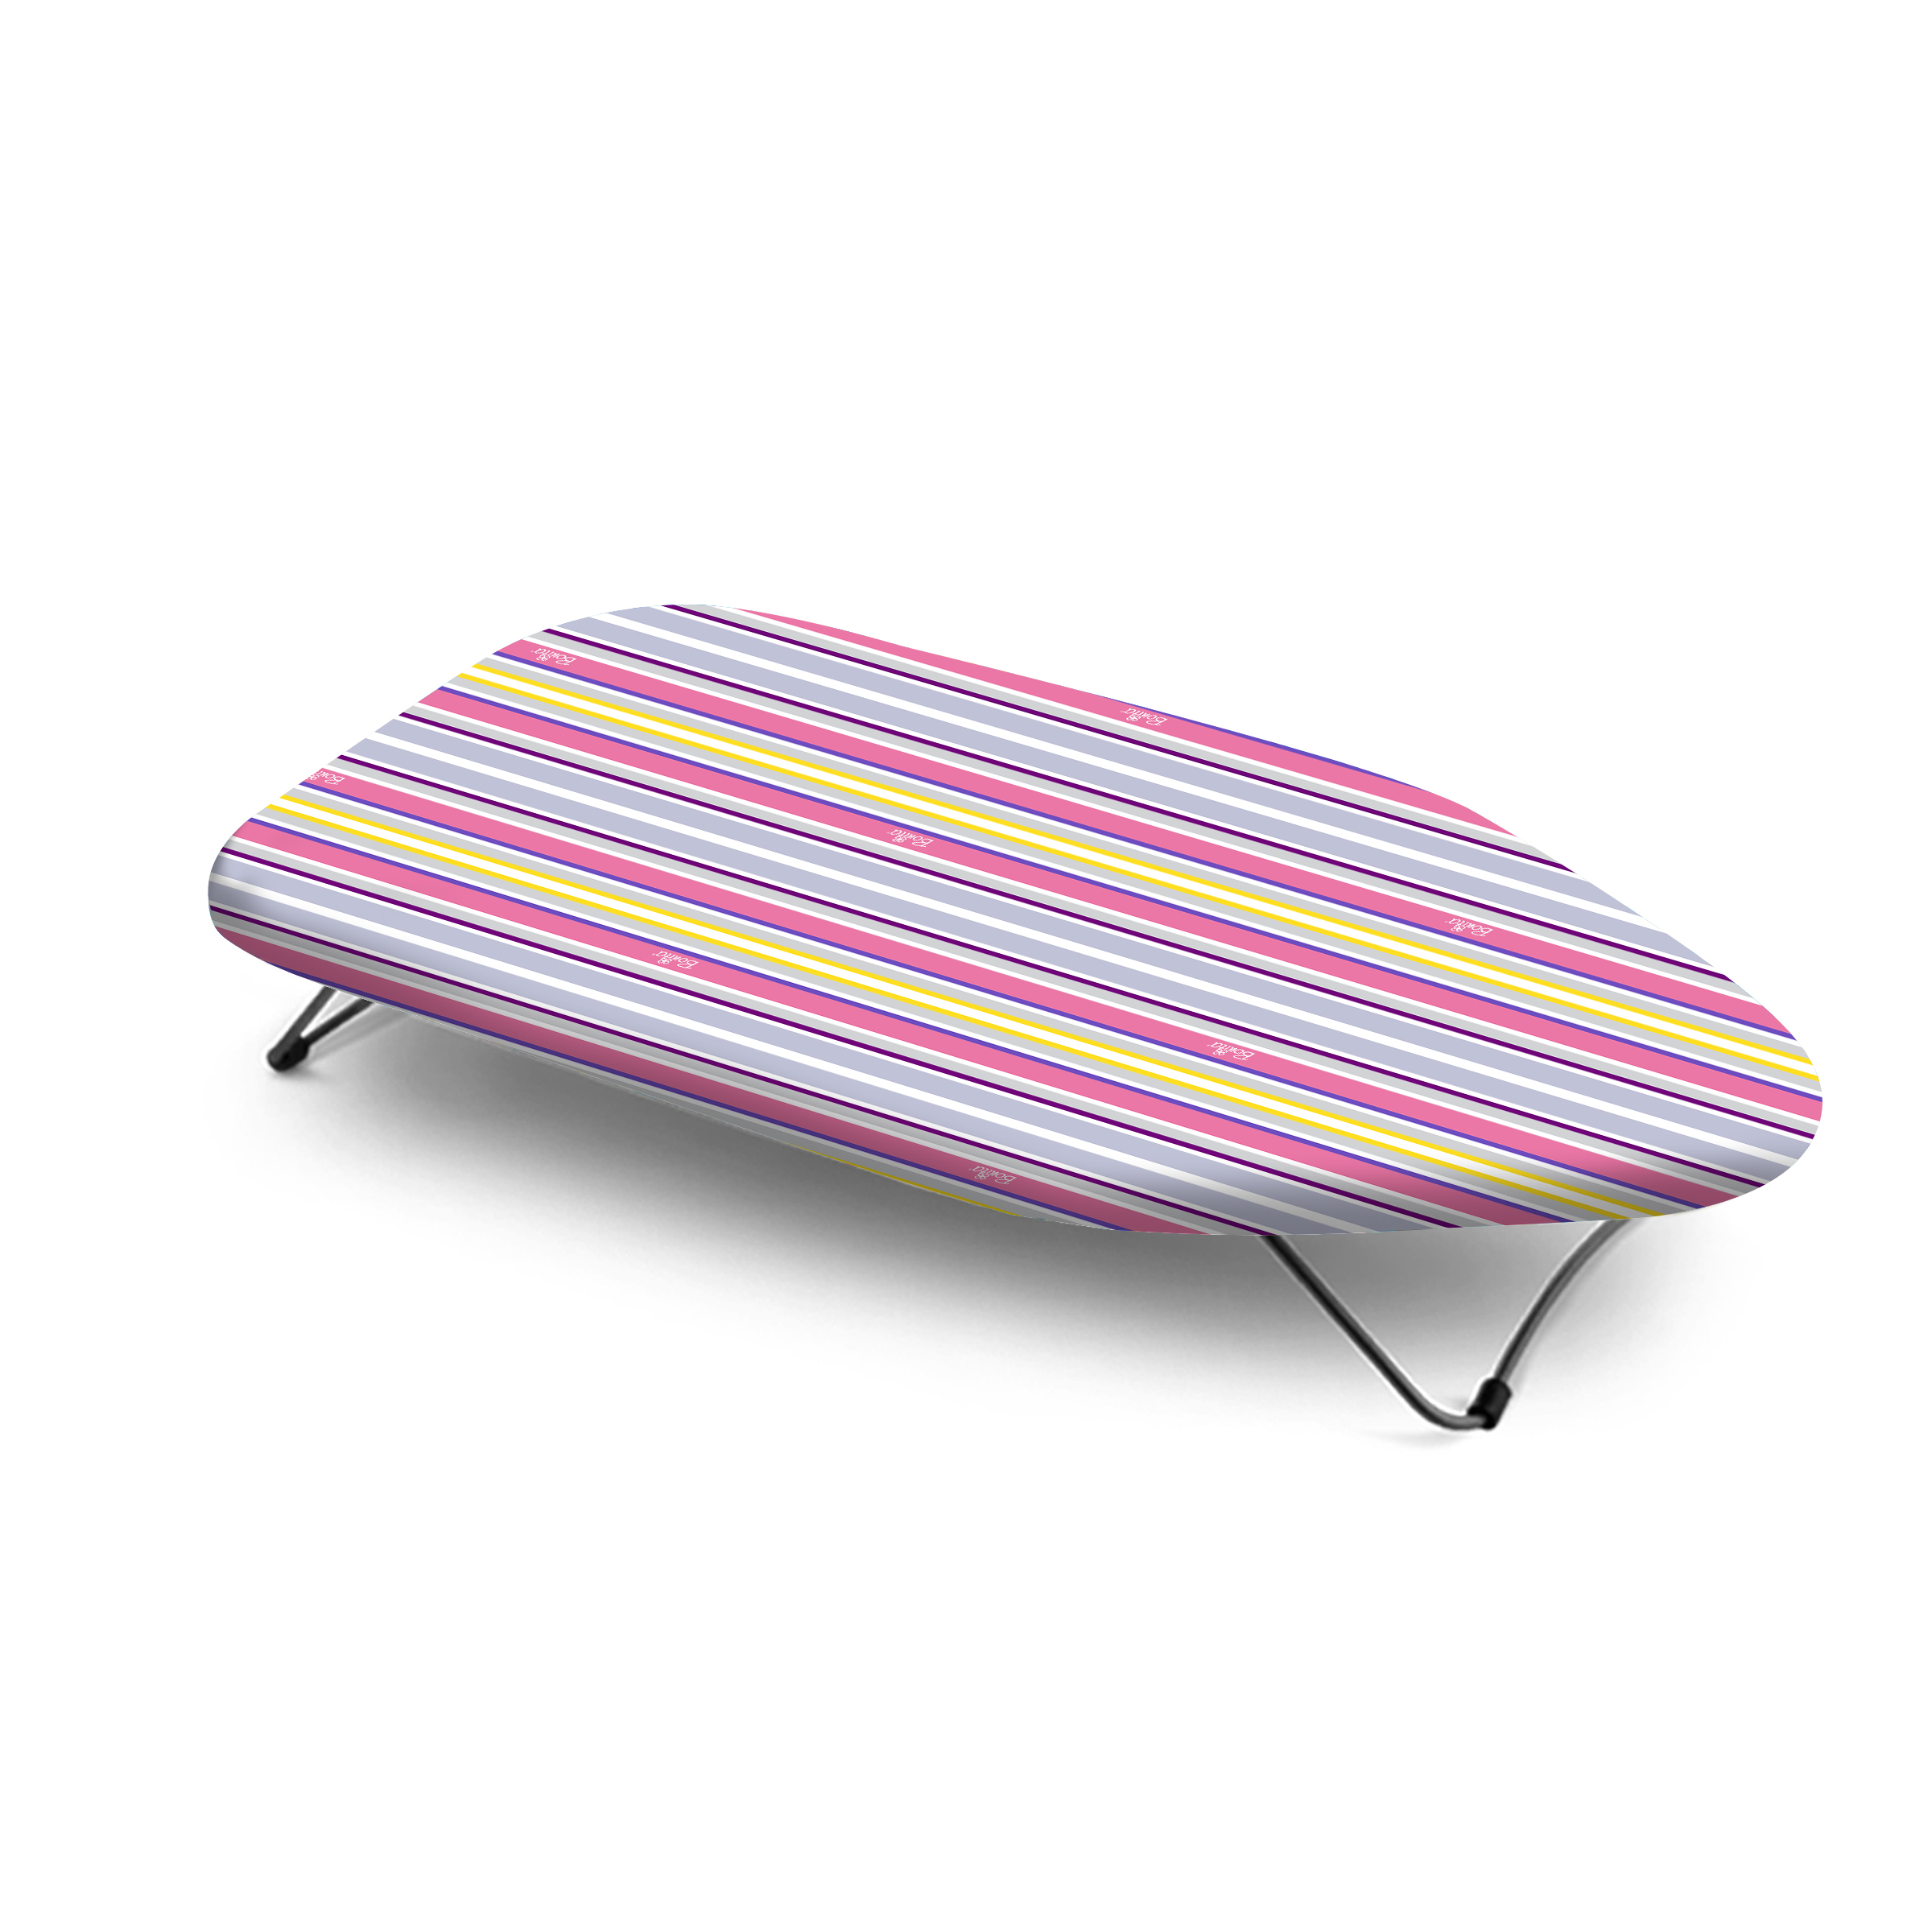 Mini Tabletop Ironing Board Mild Steel Mesh Ironing Boards in White Colour by Bonita